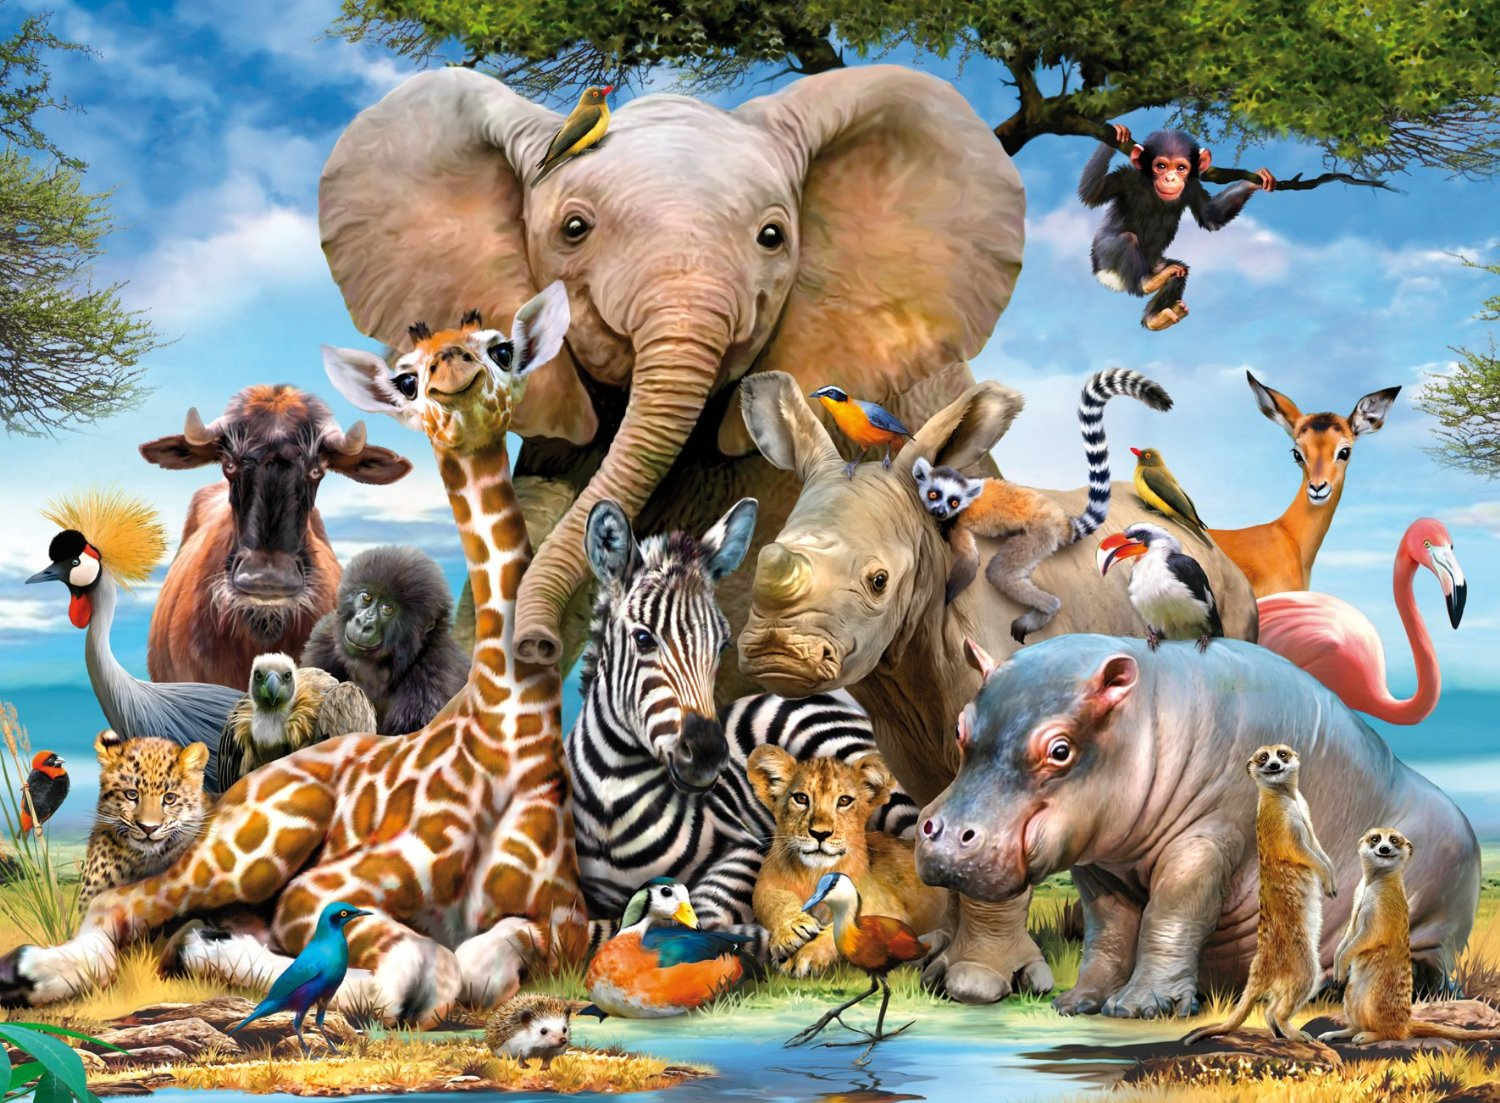 Group of wild animals together - photo#34